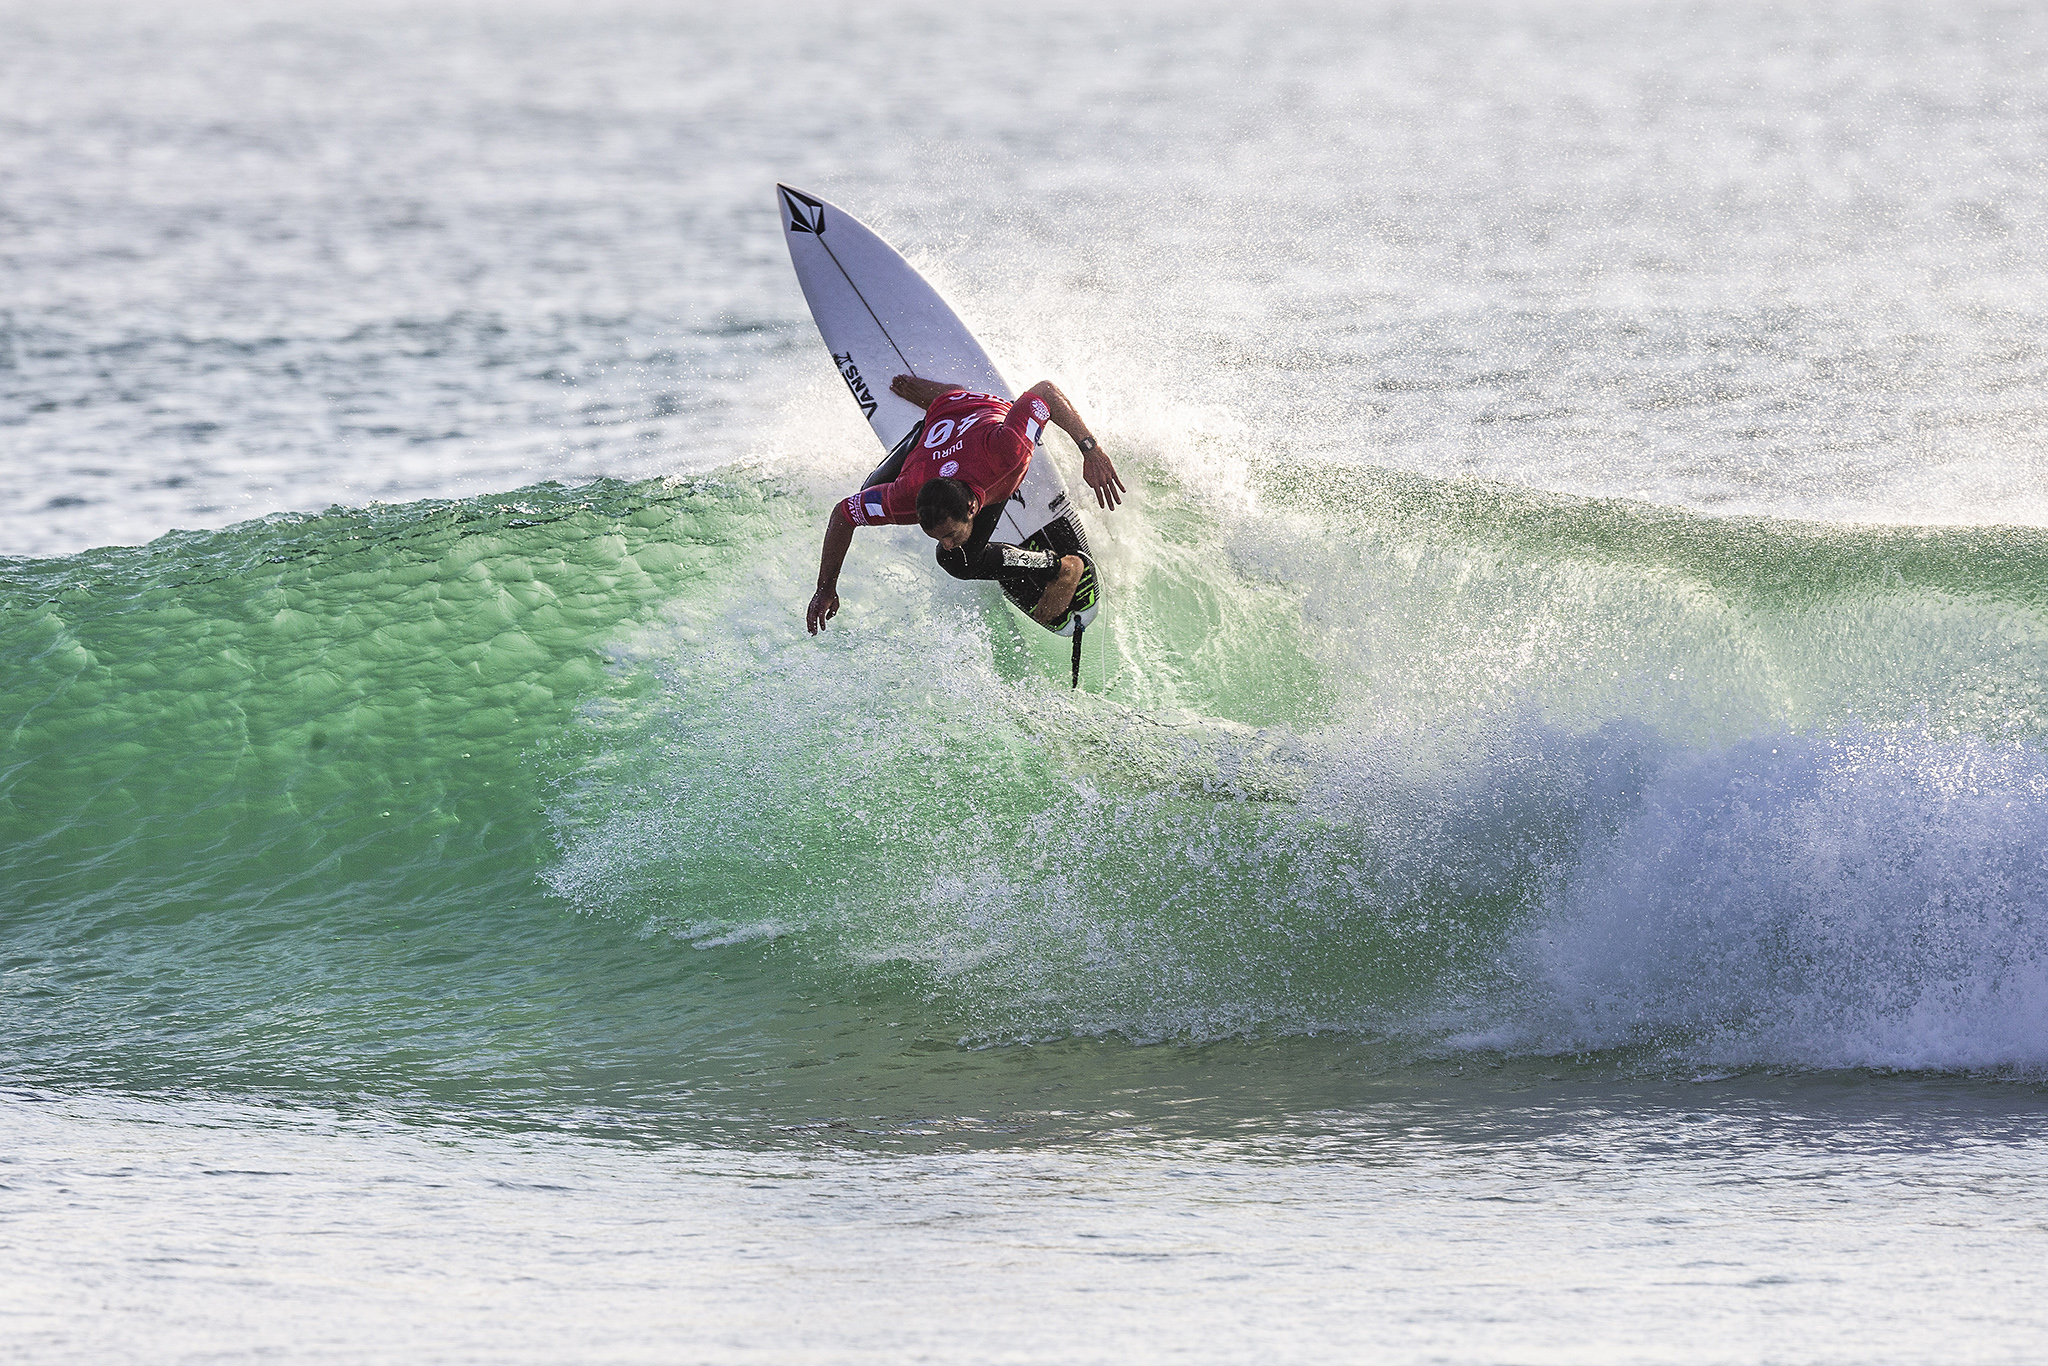 4b91bea61f1f47 Joan Duru (FRA) advances to the final of the 2018 MEO Rip Curl Pro after  winning Semifinal Heat 2 in Peniche